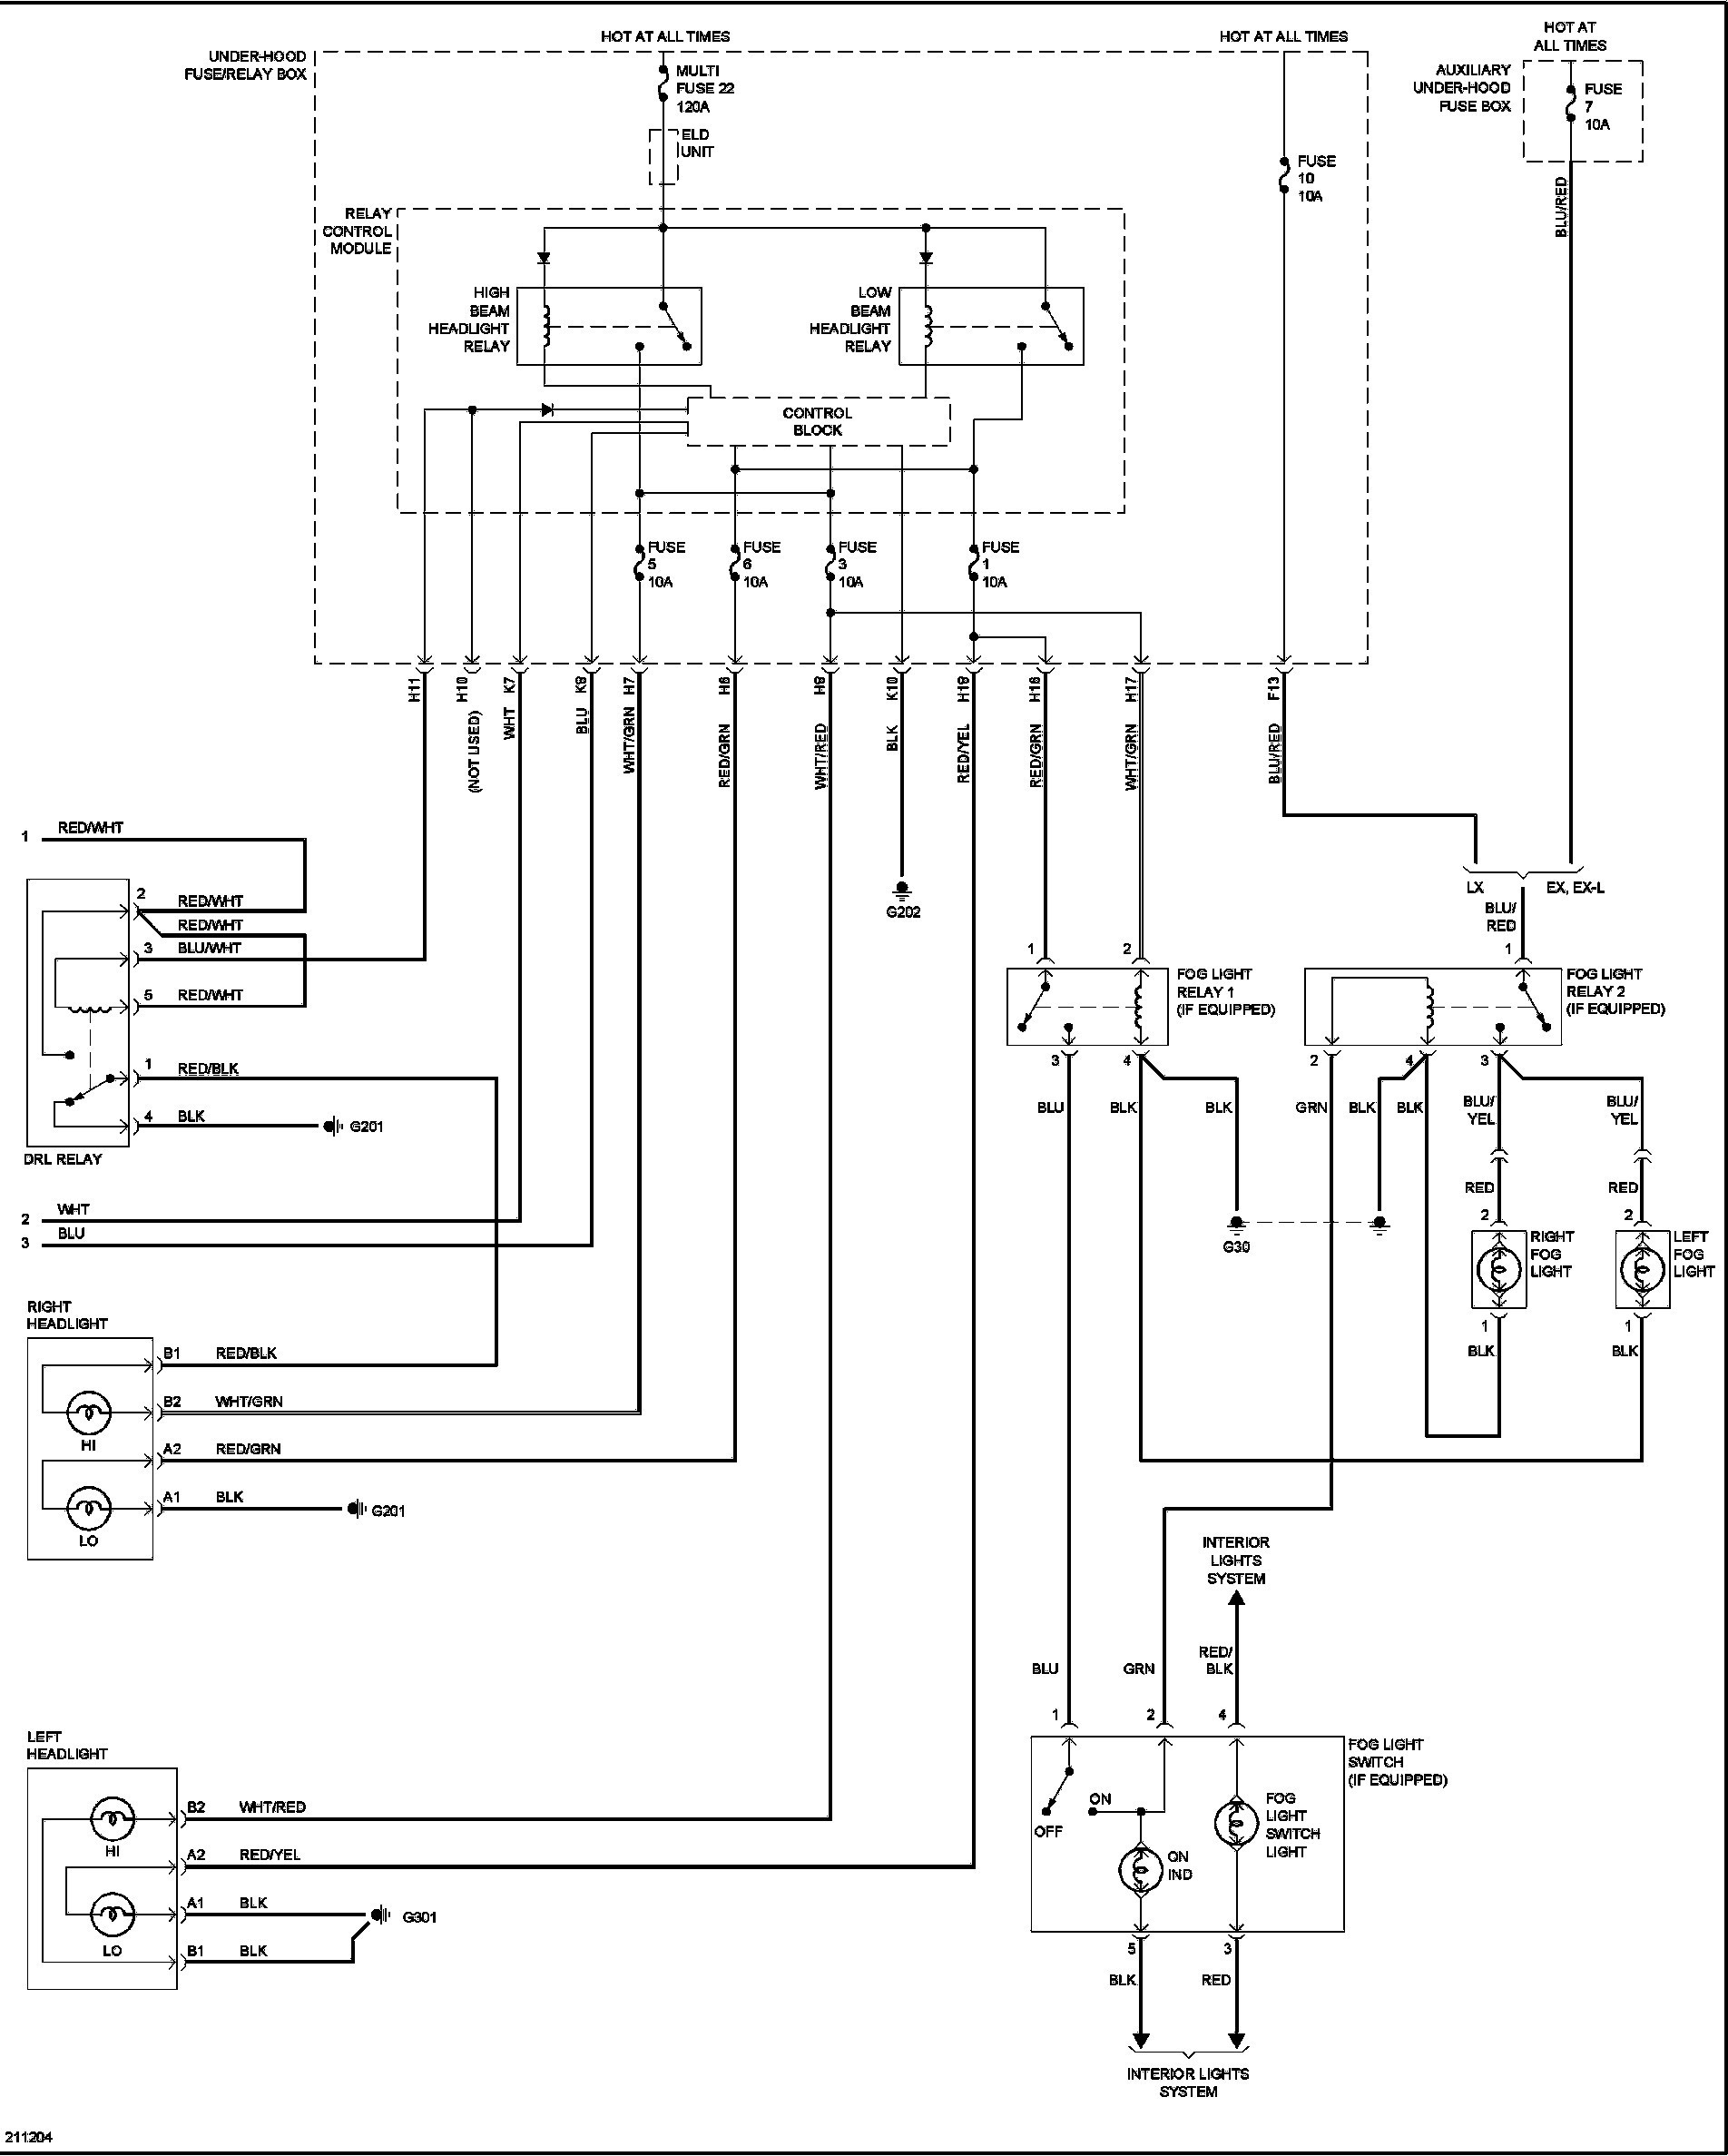 Wiring Diagram For Honda Odyssey Just Wiring Data 2000 Honda Passport Wiring -Diagram 2000 Honda Odyssey Wiring Diagram